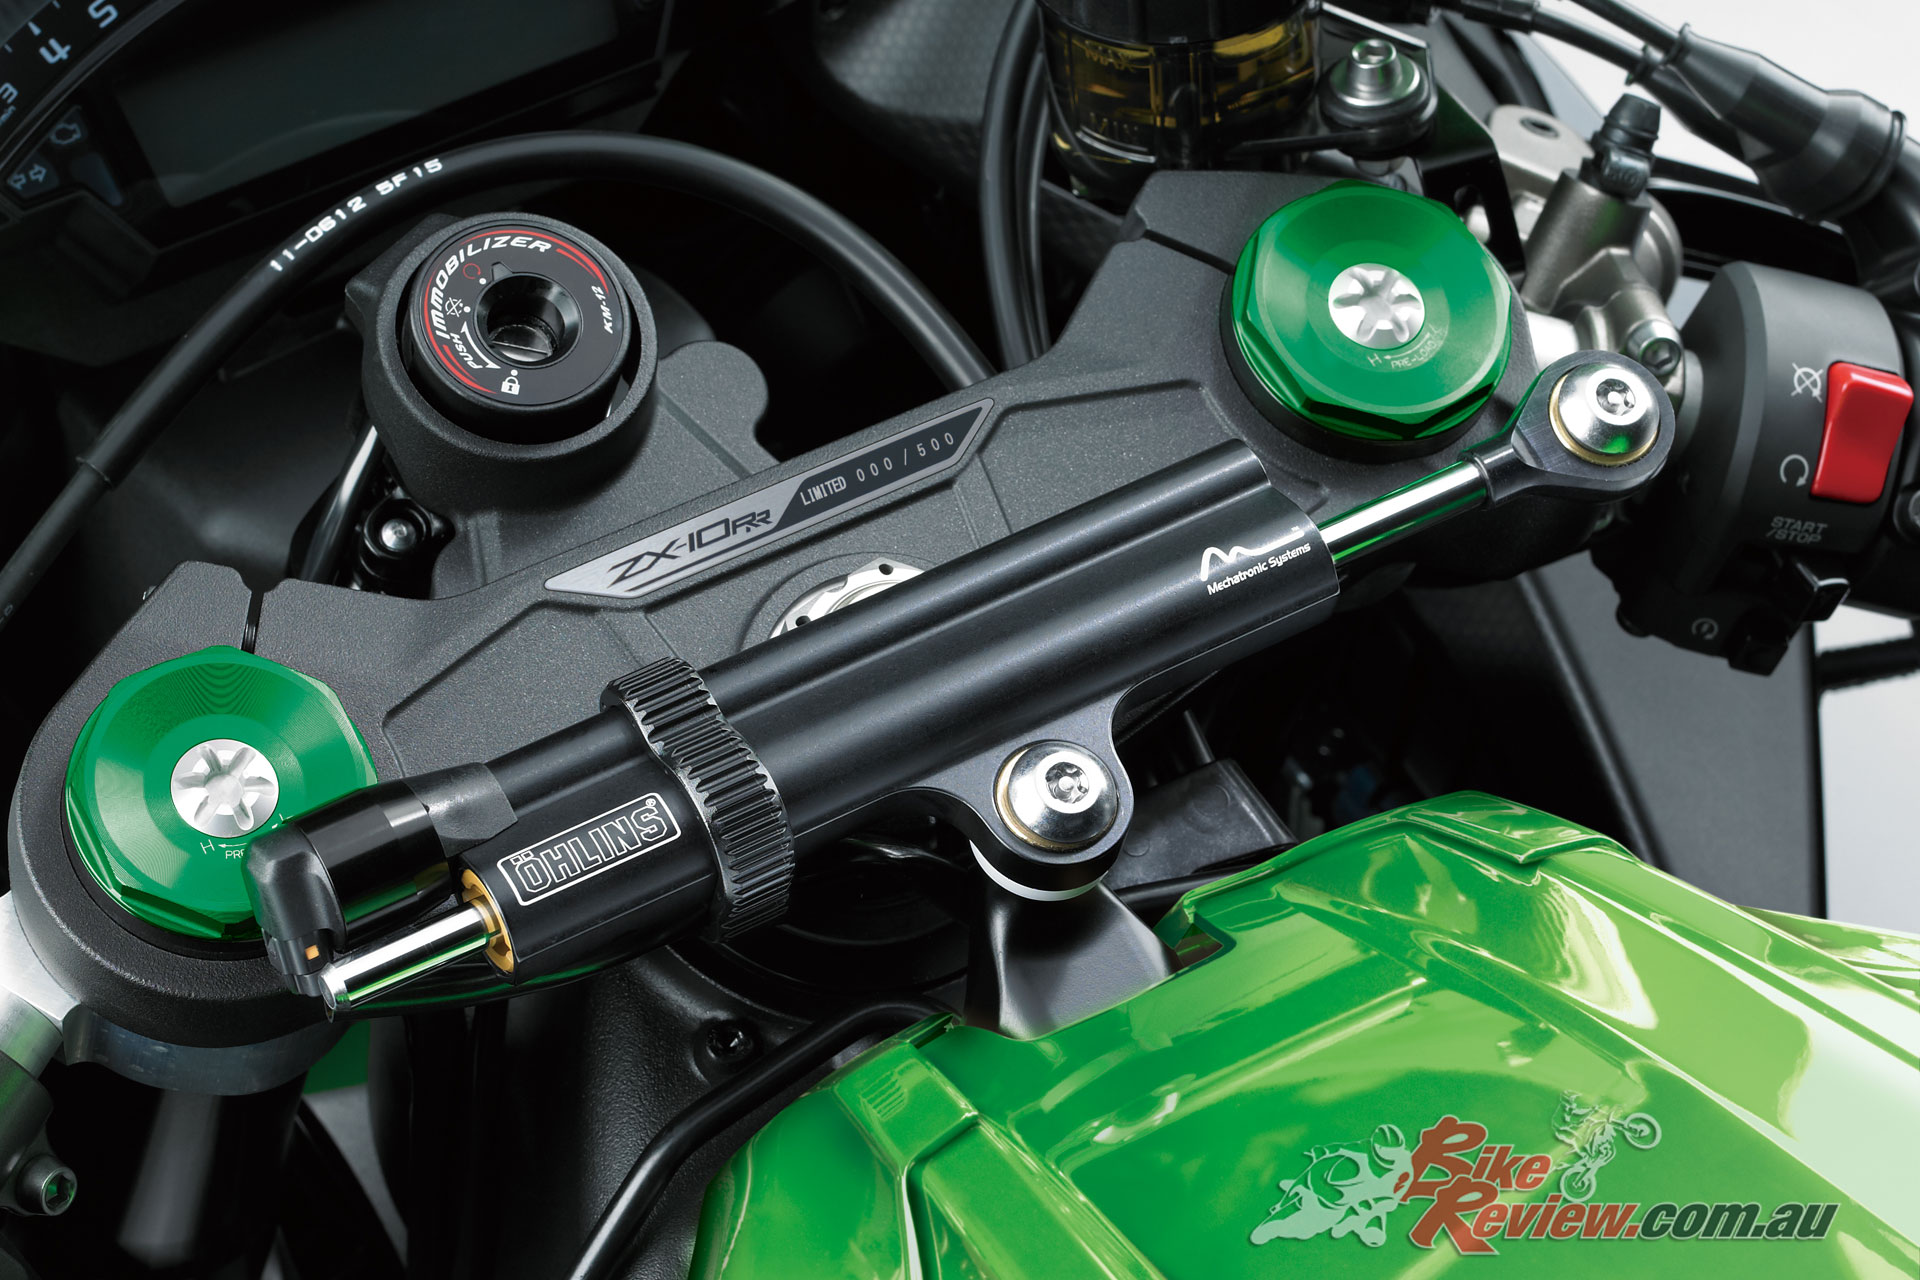 2019 Kawasaki ZX-10R - Ohlins electronic steering damper is now standard fitment on all models